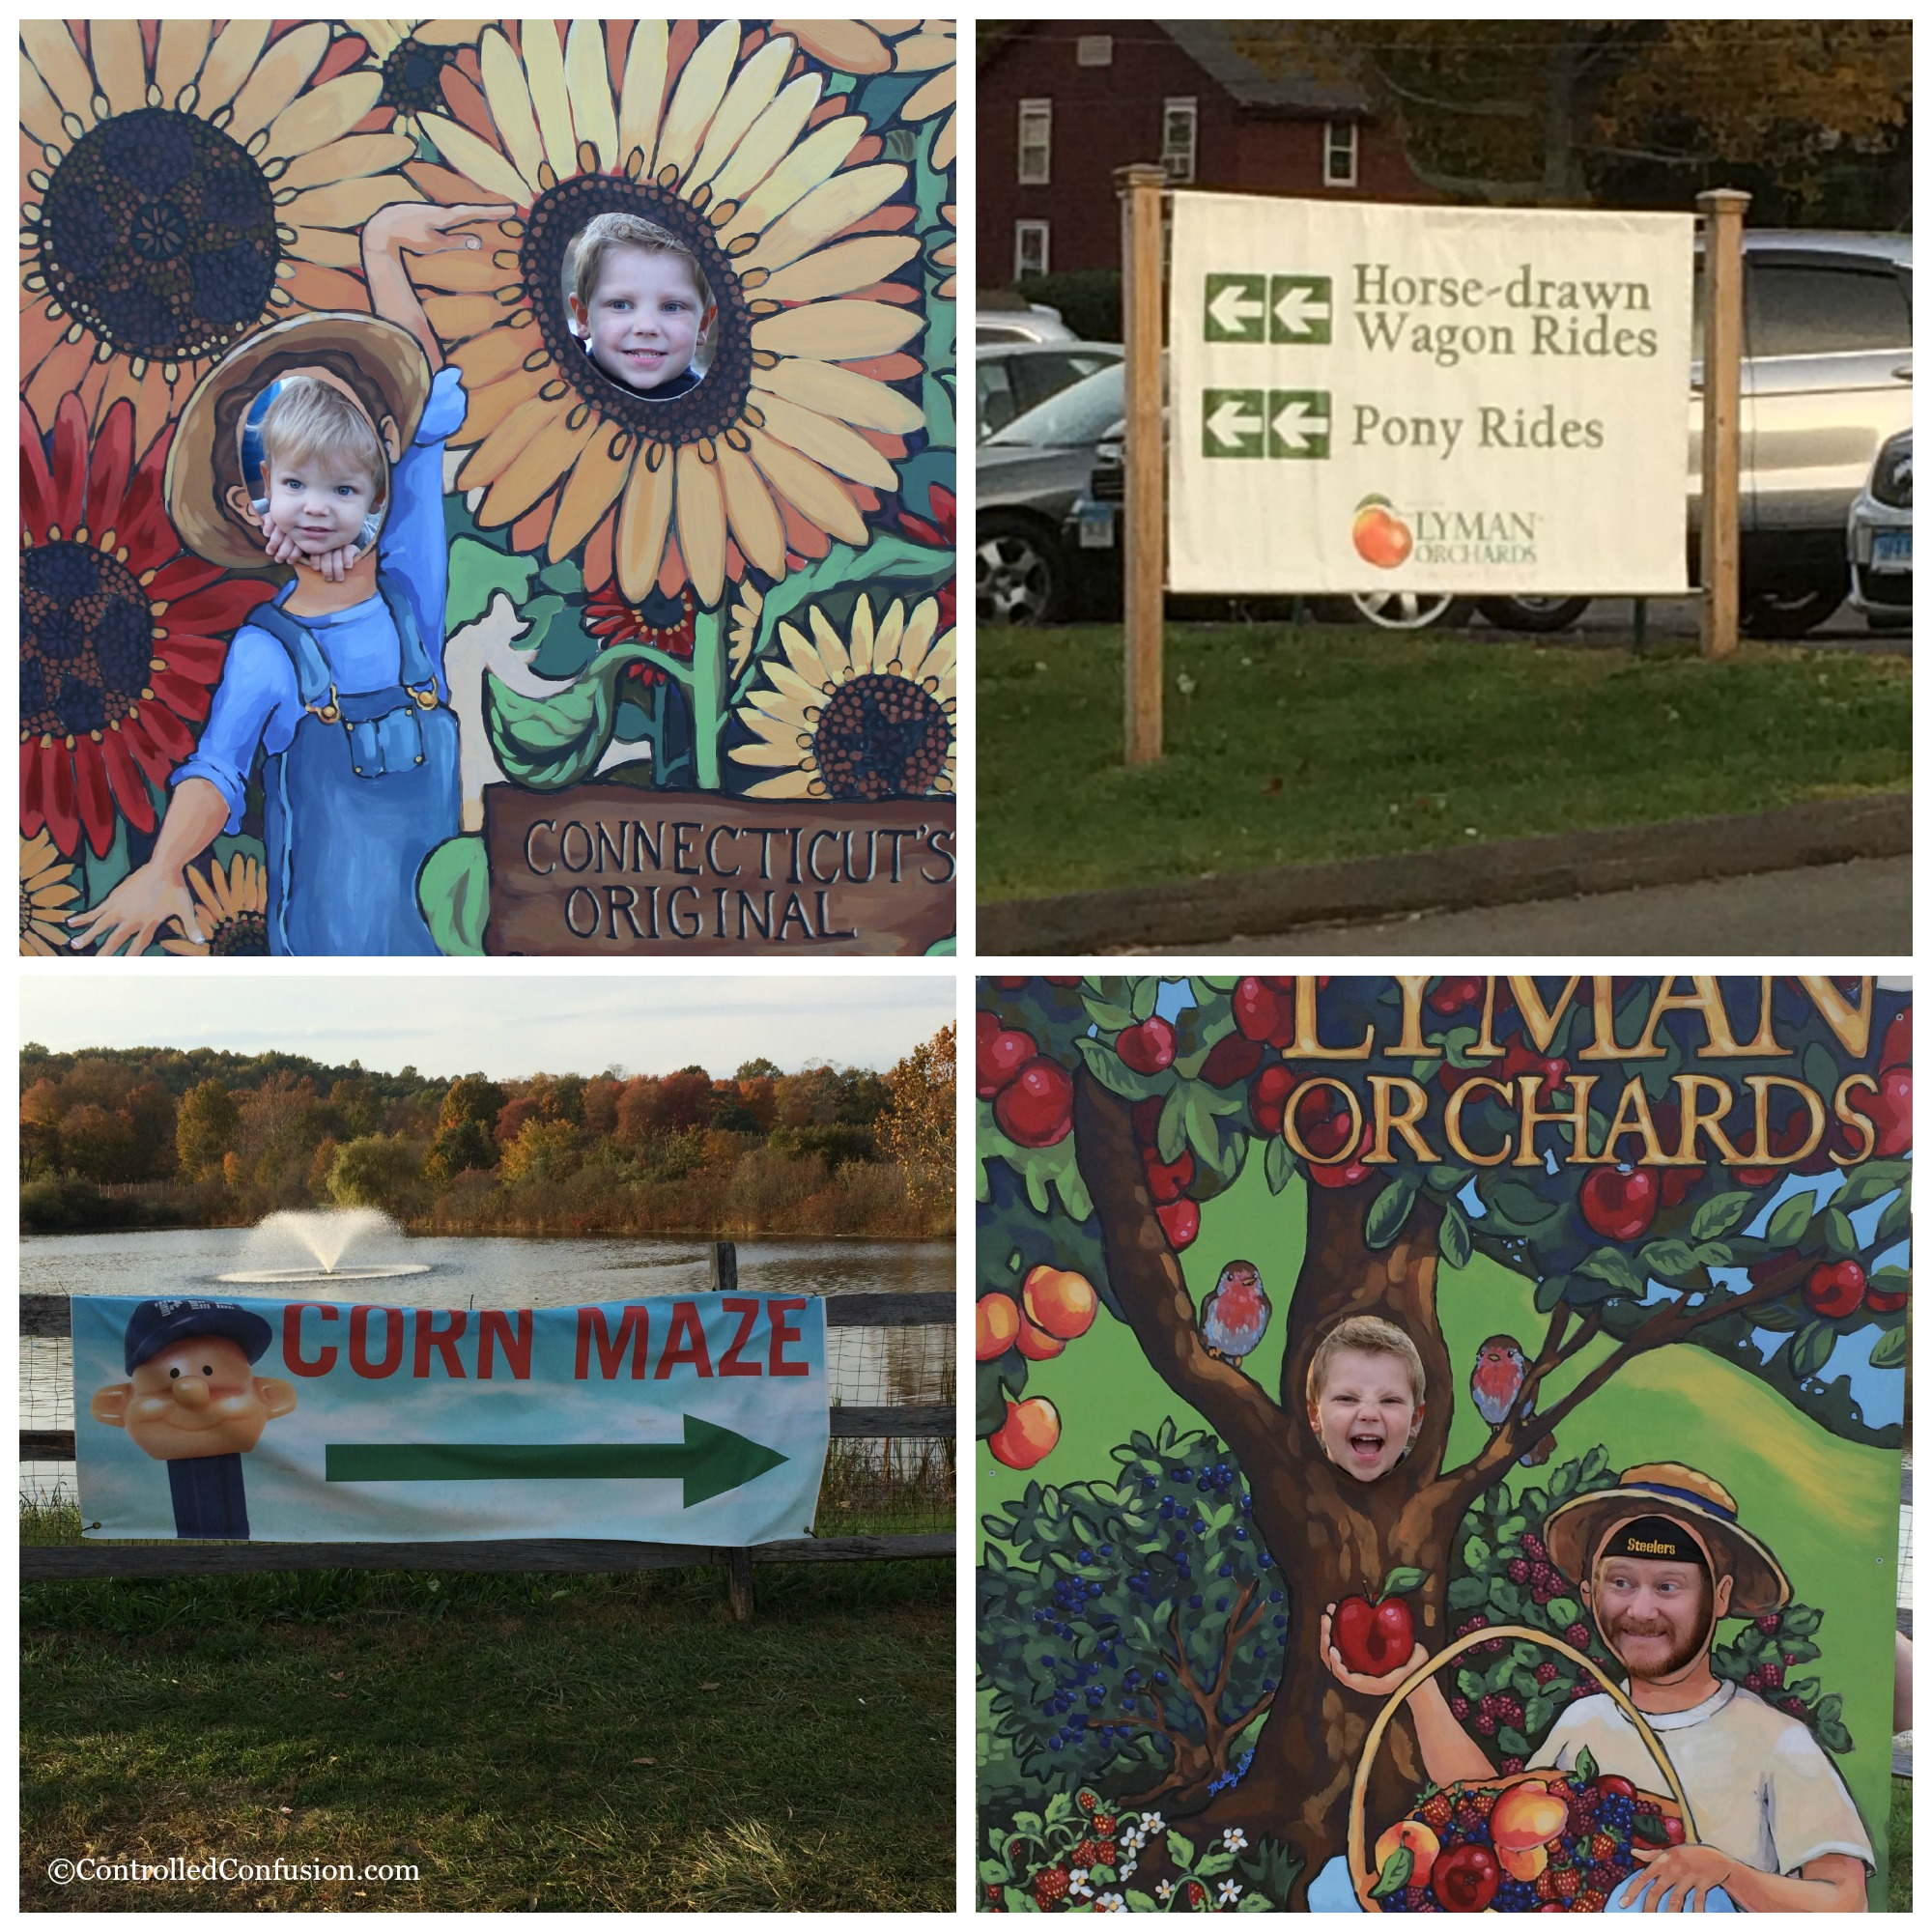 Family Fun At Lyman's Orchard for Our #LexusHarvest #FallFun31